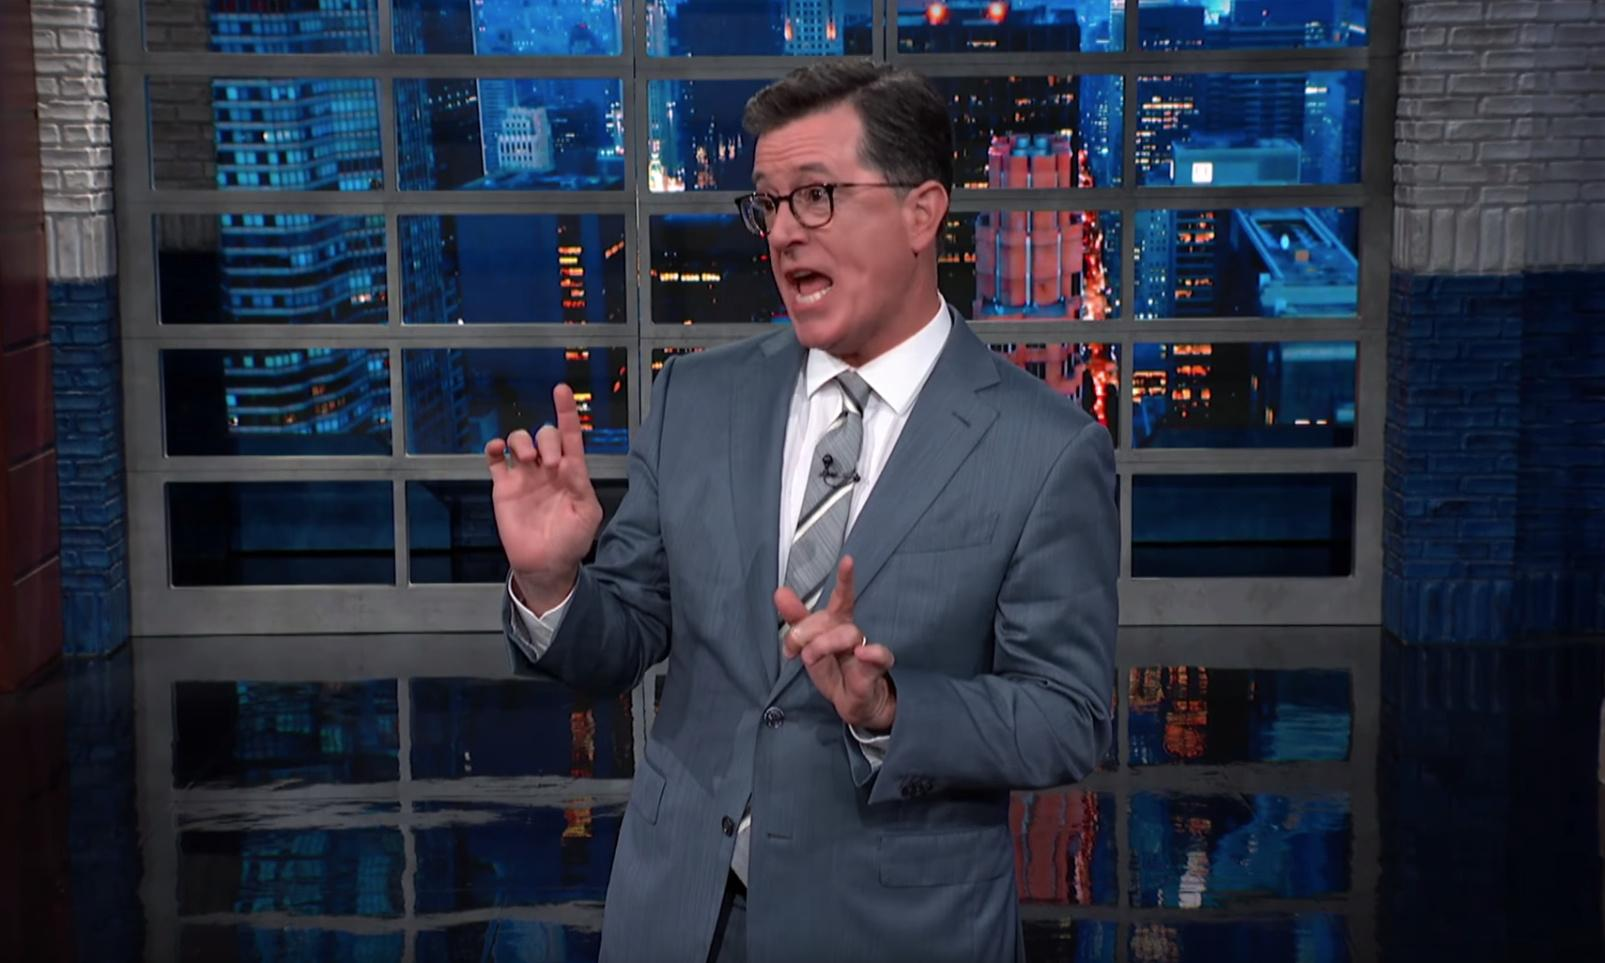 Stephen Colbert on Trump: 'Our horror only makes him stronger'